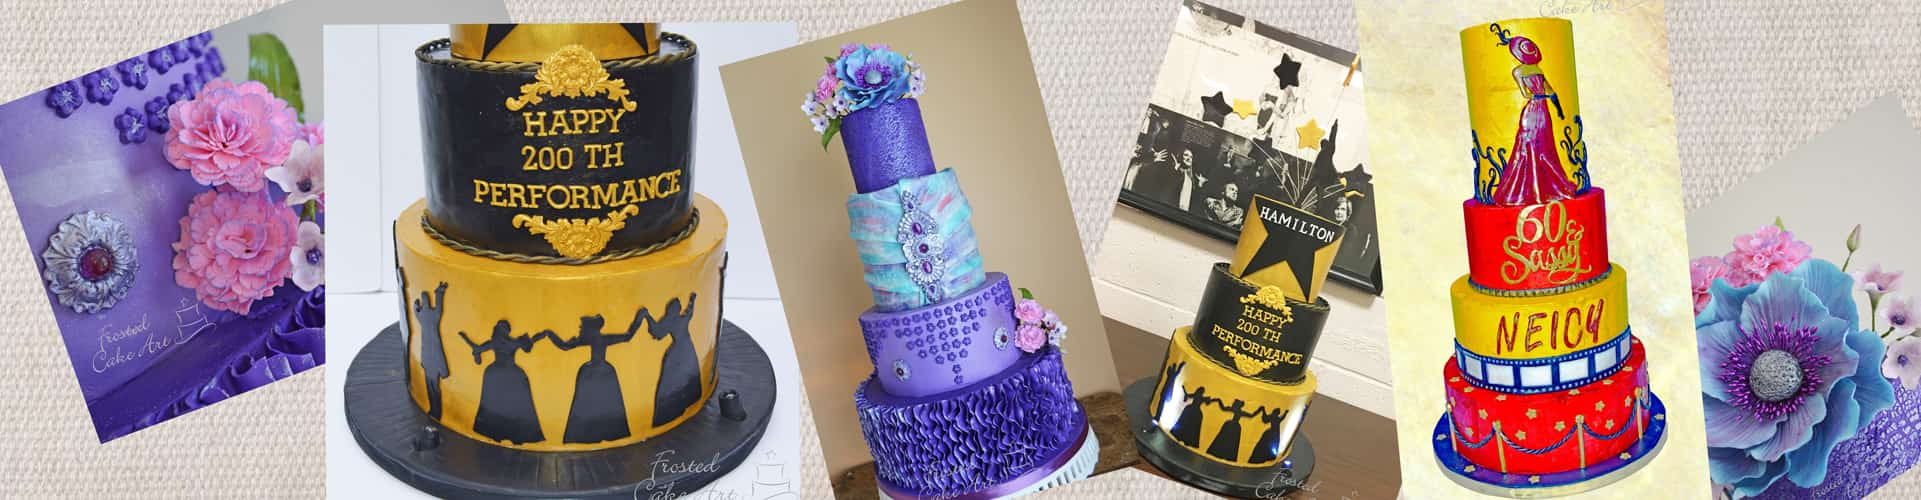 Wedding Cakes - Frosted Cake Art - Chagrin Falls, Solon, Cleveland